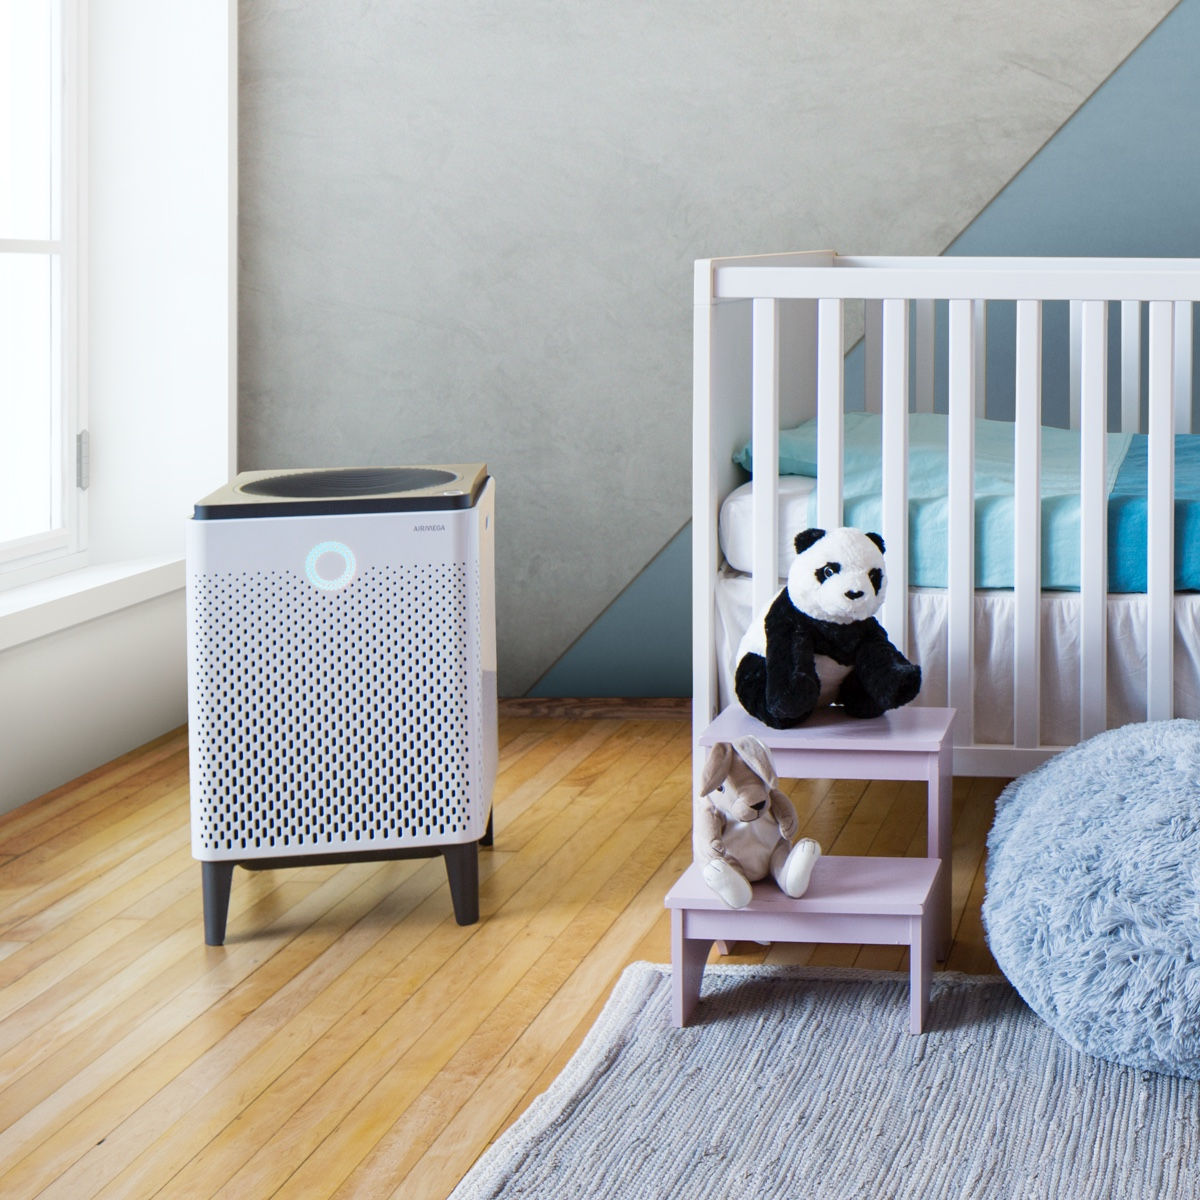 Choosing the Best Air Purifier and Eliminating Indoor Air Pollution